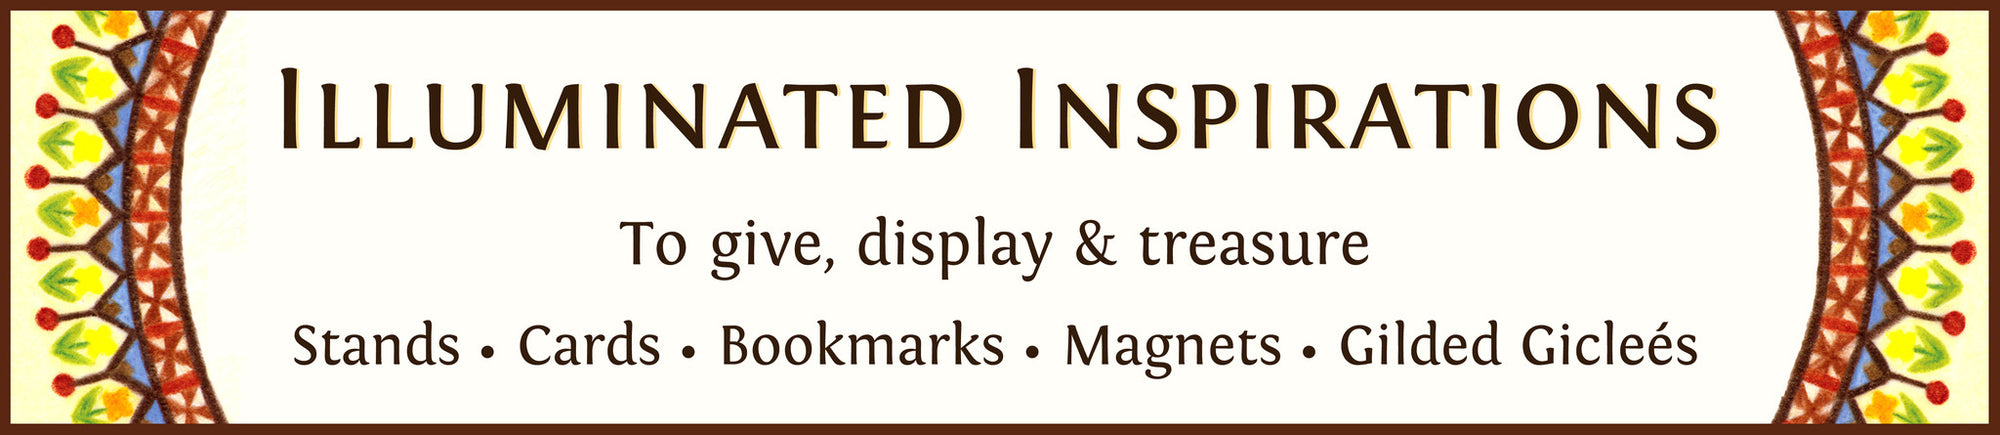 ILLUMINATED INSPIRATIONS     - Quote Art to Give, Display and Treasure